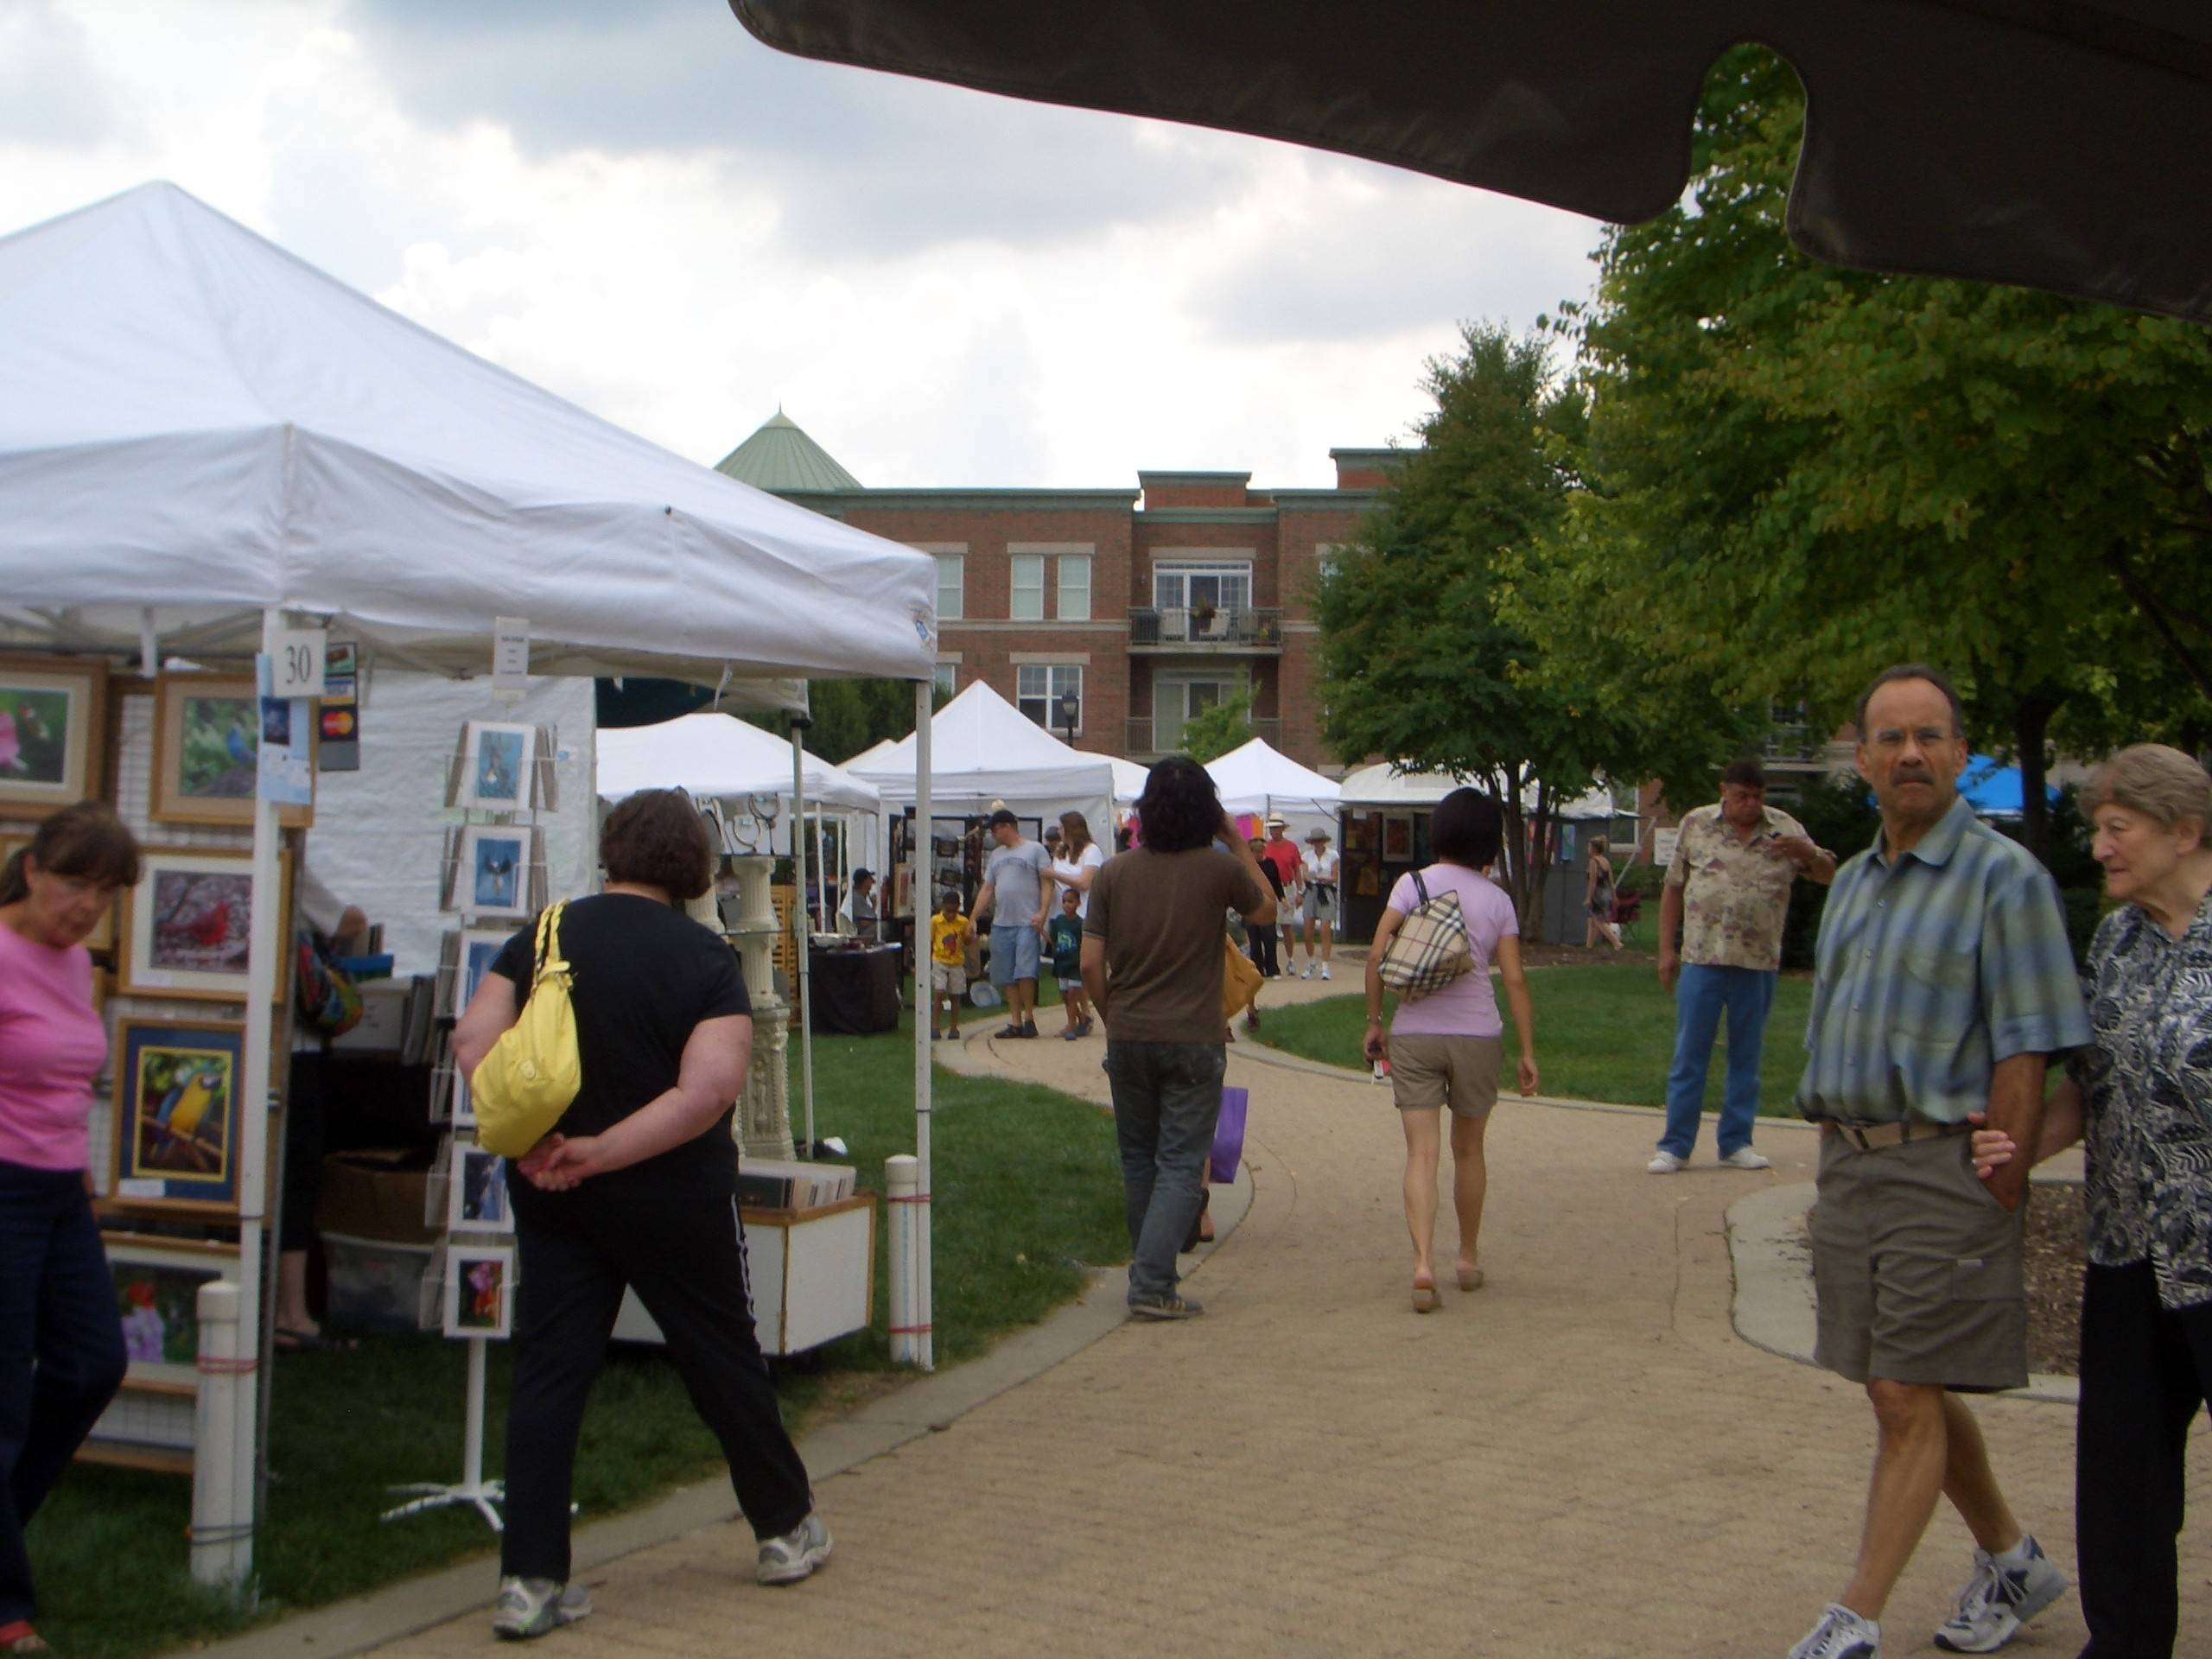 The Palatine Jaycees' 10th annual An Art Affair Around the Square will draw artists of all specialties to downtown Palatine this weekend. the event, which also will feature live performances from local musicians, takes place from 10 a.m. to 5 p.m. Saturday and Sunday.